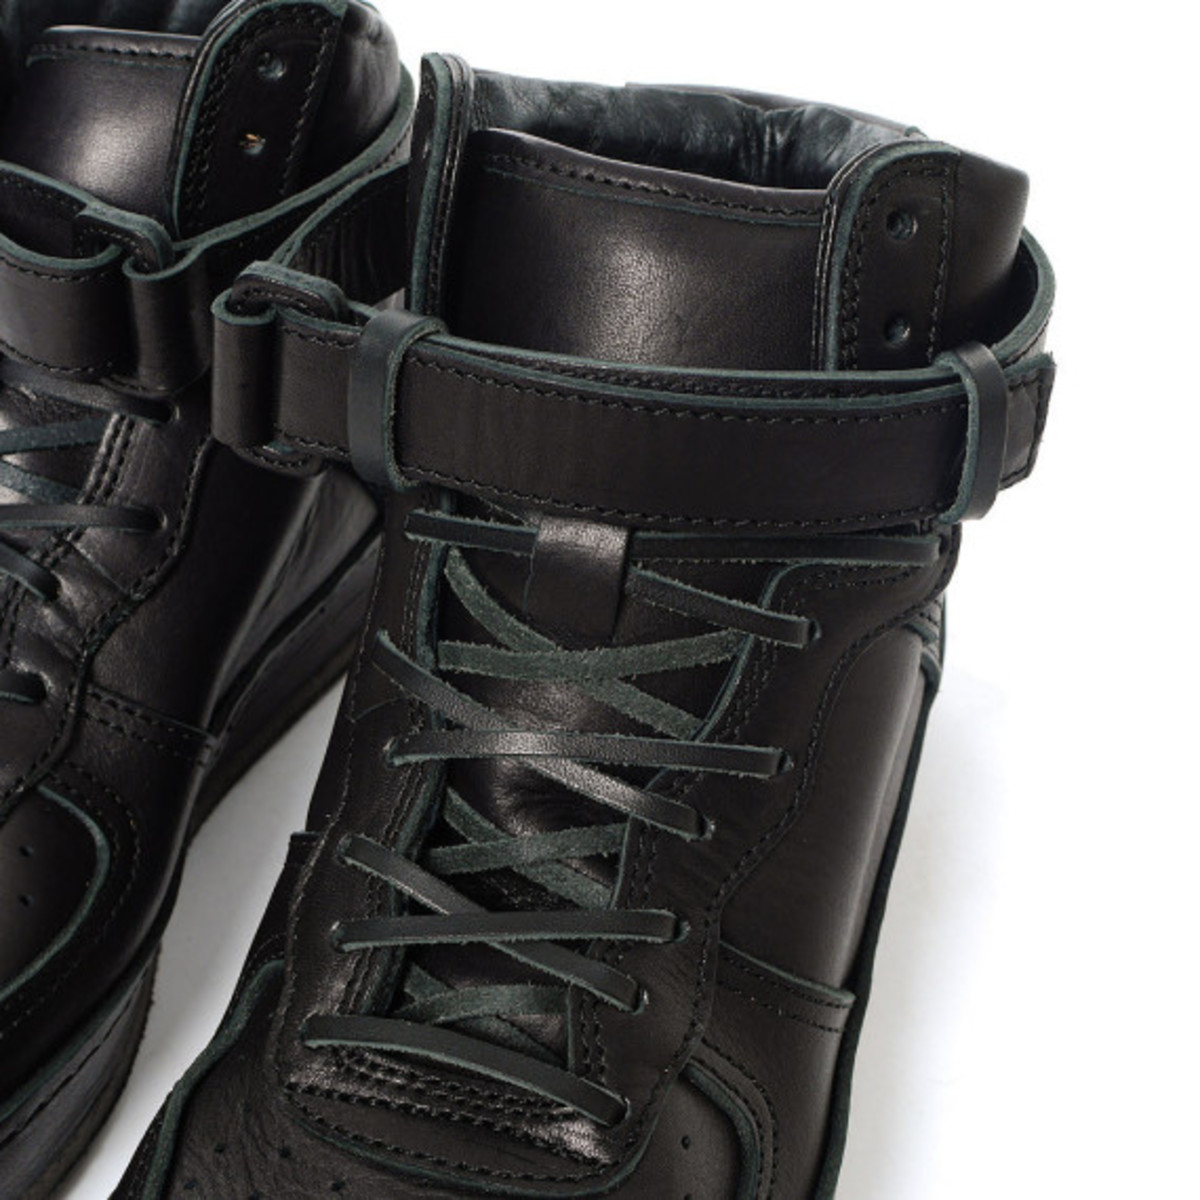 Hender Scheme - Manual Industrial Products 01 Black: Inspired by Nike Air Force 1 High - 4